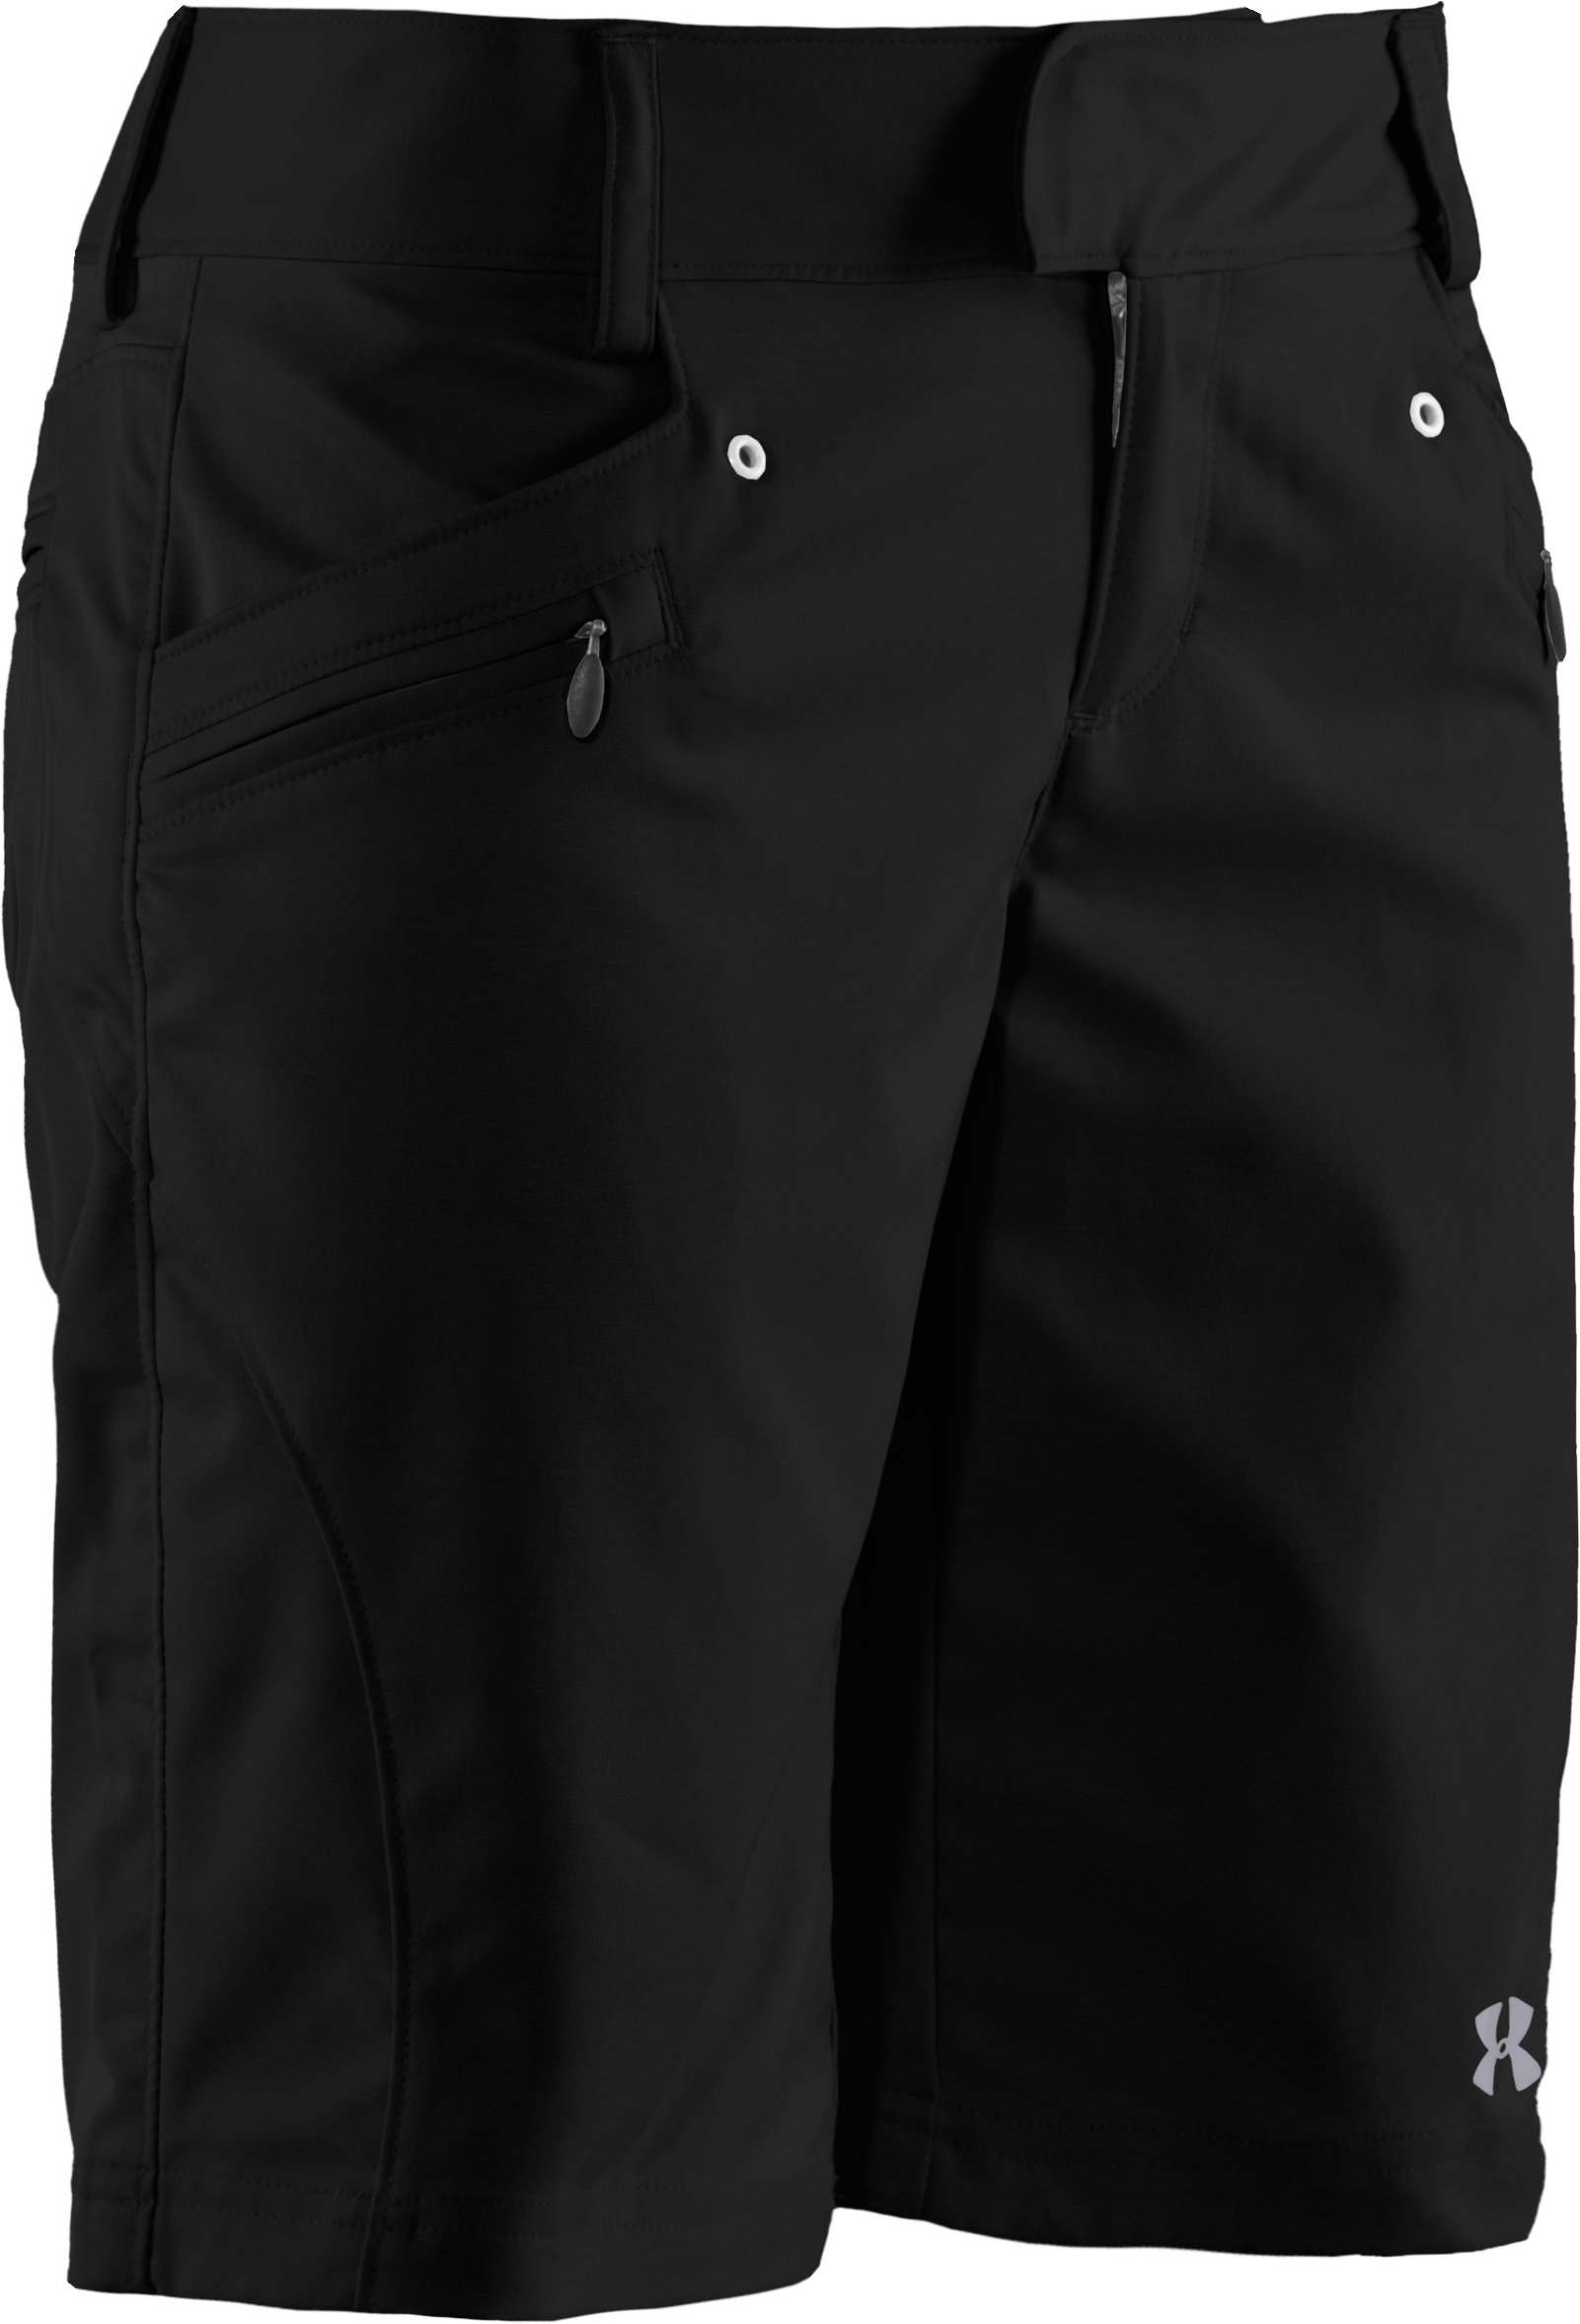 Women's UA Tellervo Walking Shorts, Black , undefined